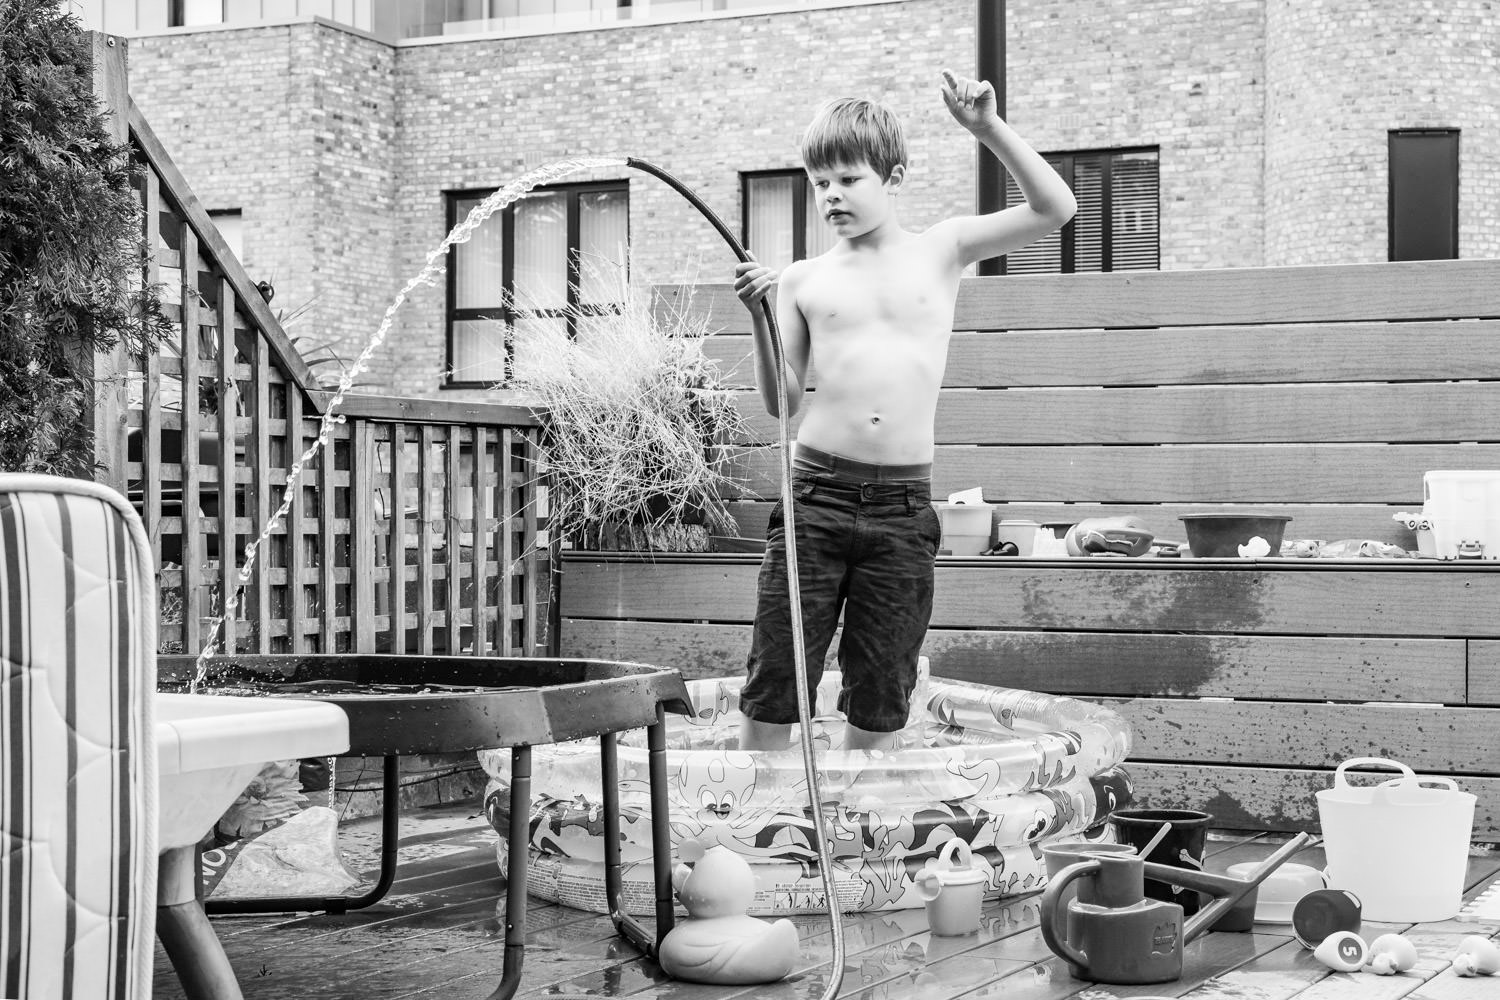 Boy stood on roof terrace pouring water out of hose